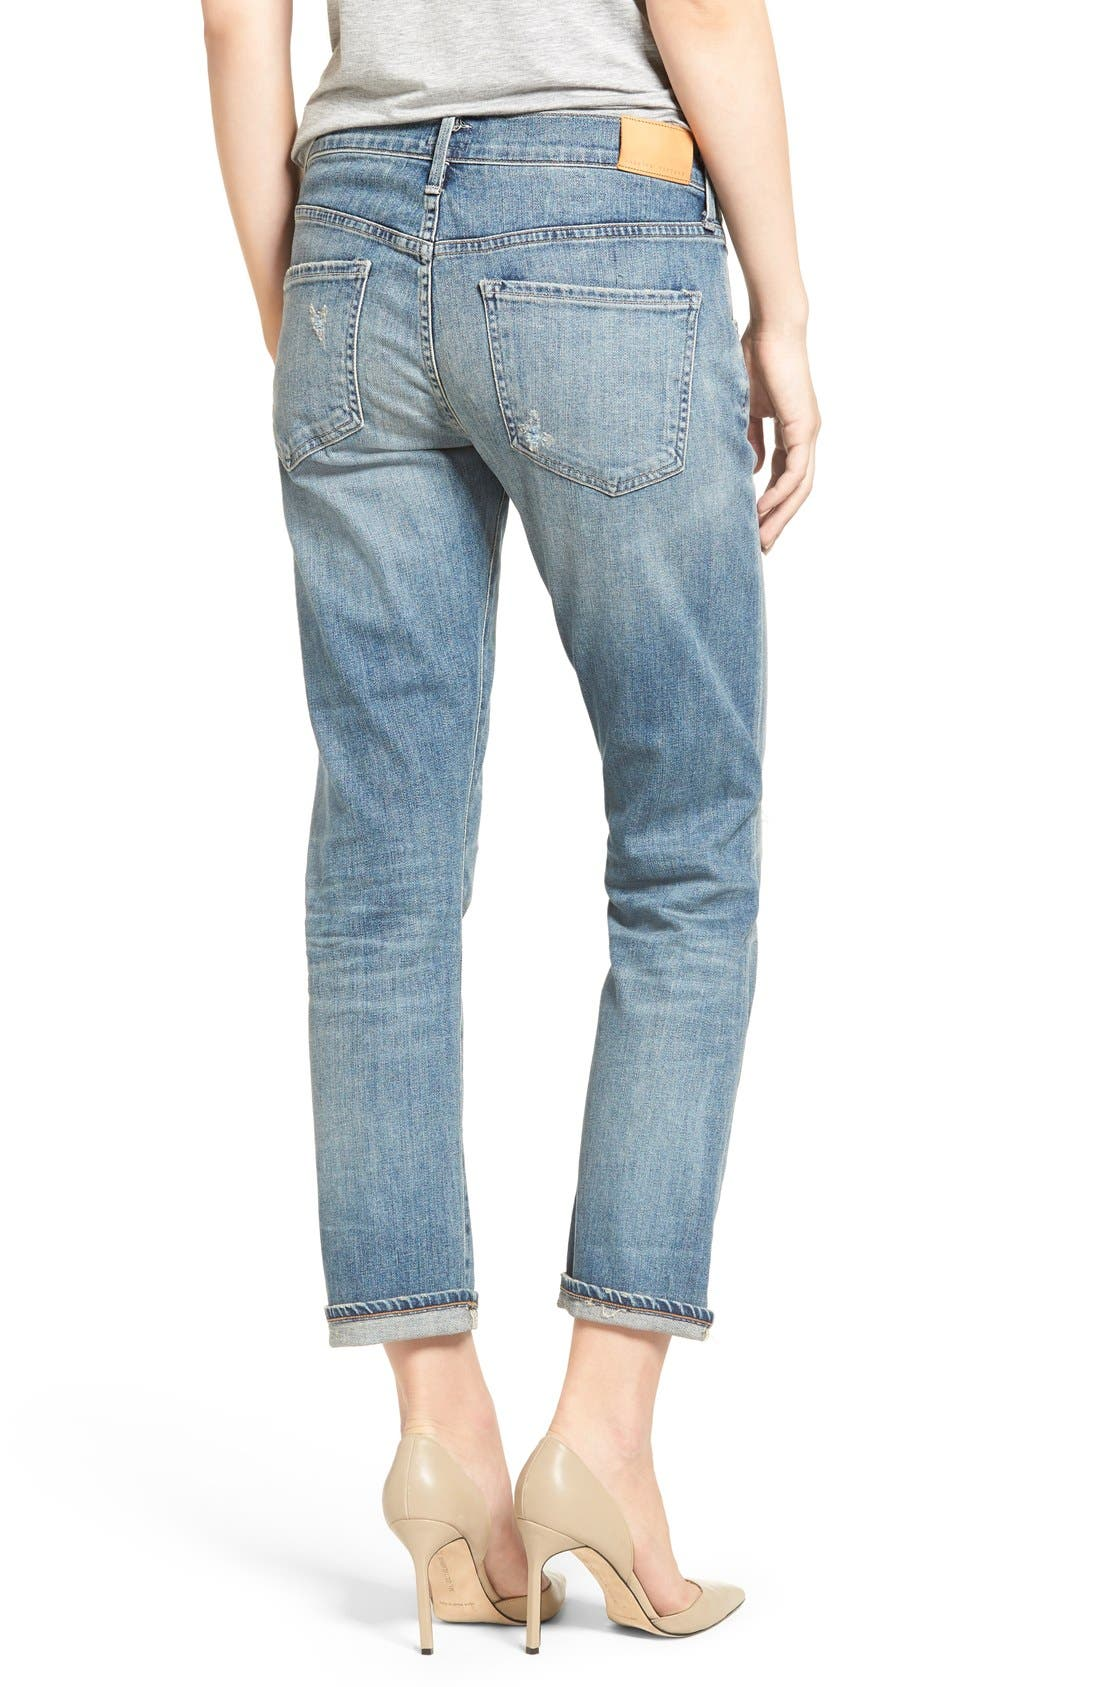 'Emerson' Ripped Slim Boyfriend Jeans,                             Alternate thumbnail 2, color,                             Roseland